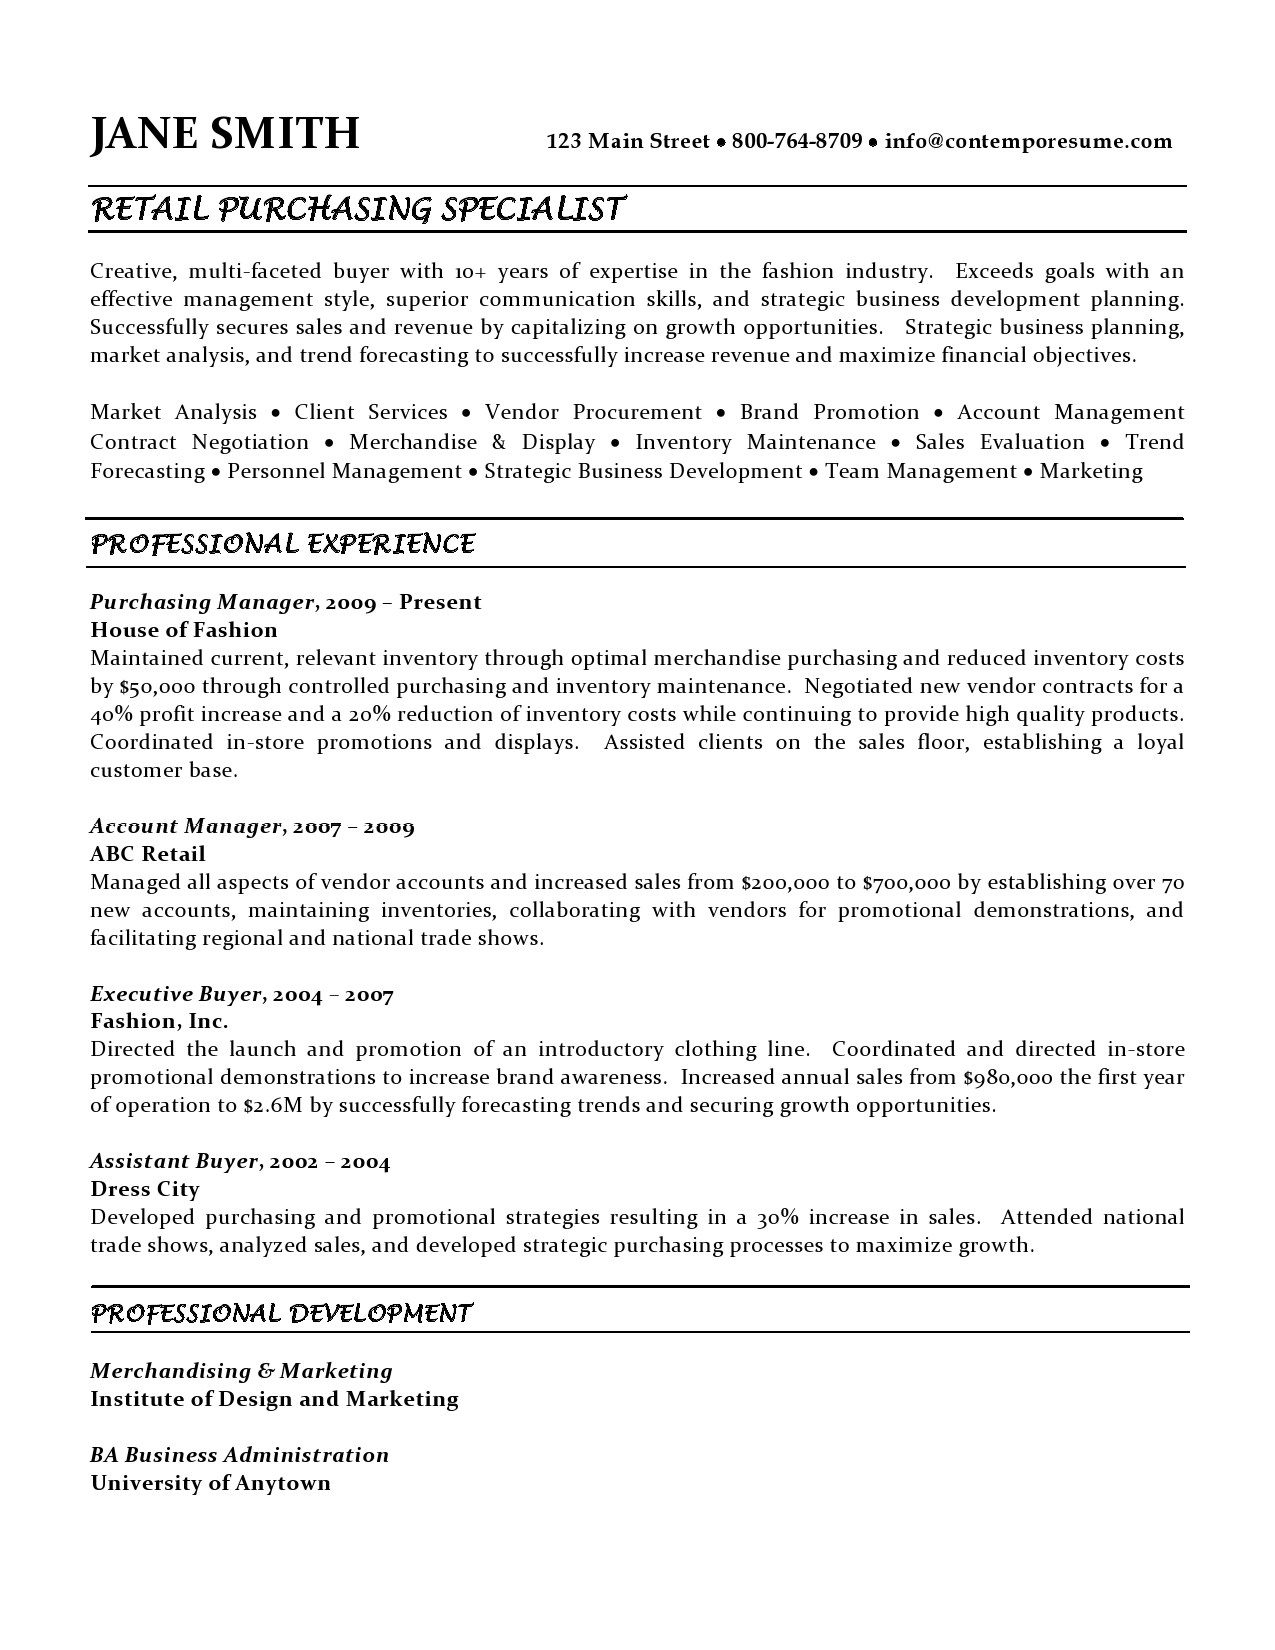 text version of the purchasing specialist